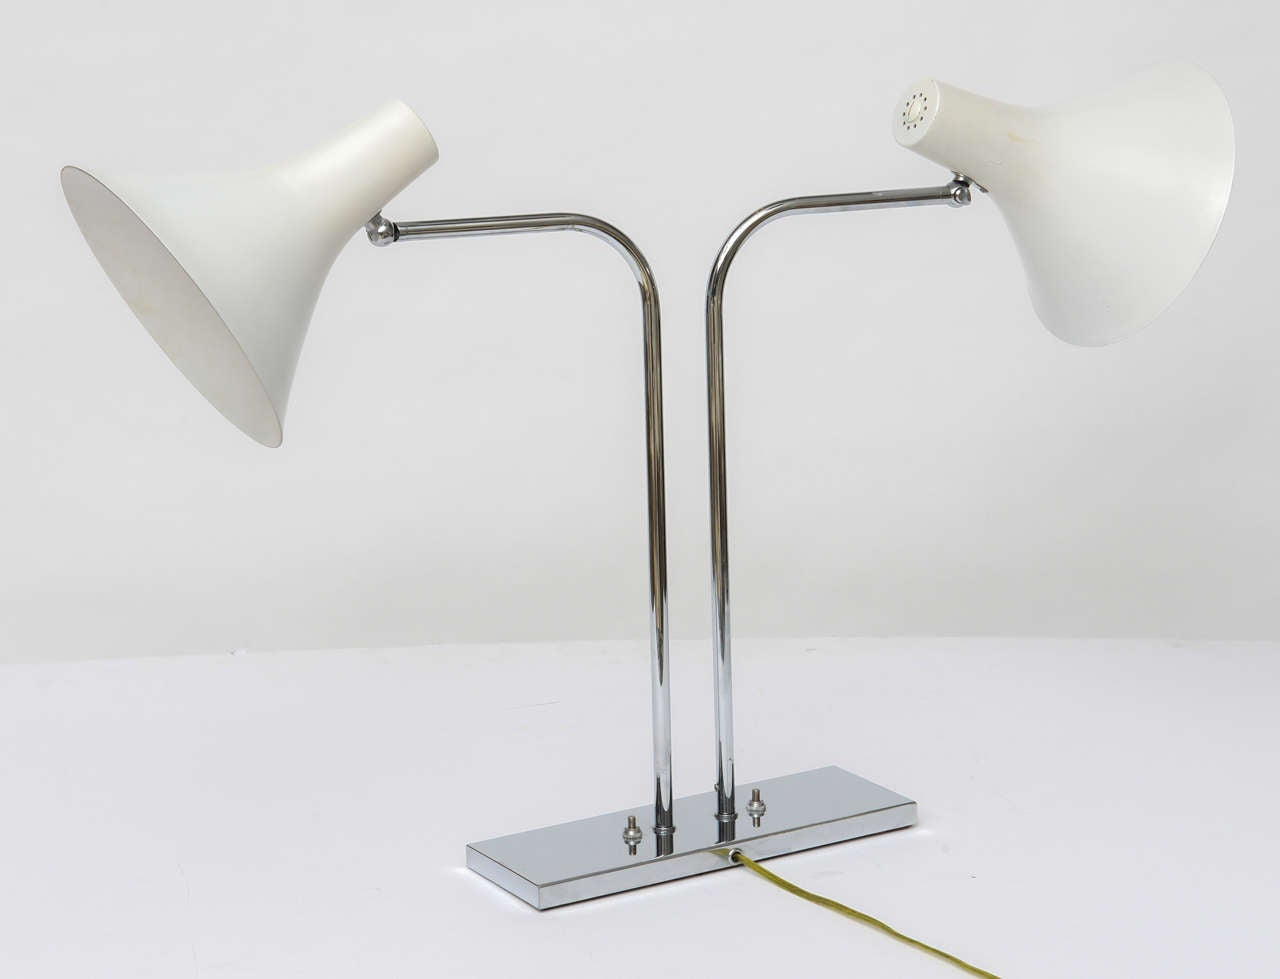 1960's Nessen Studios Polished Chrome and White Enamel Double Arm Desk Lamp For Sale 2